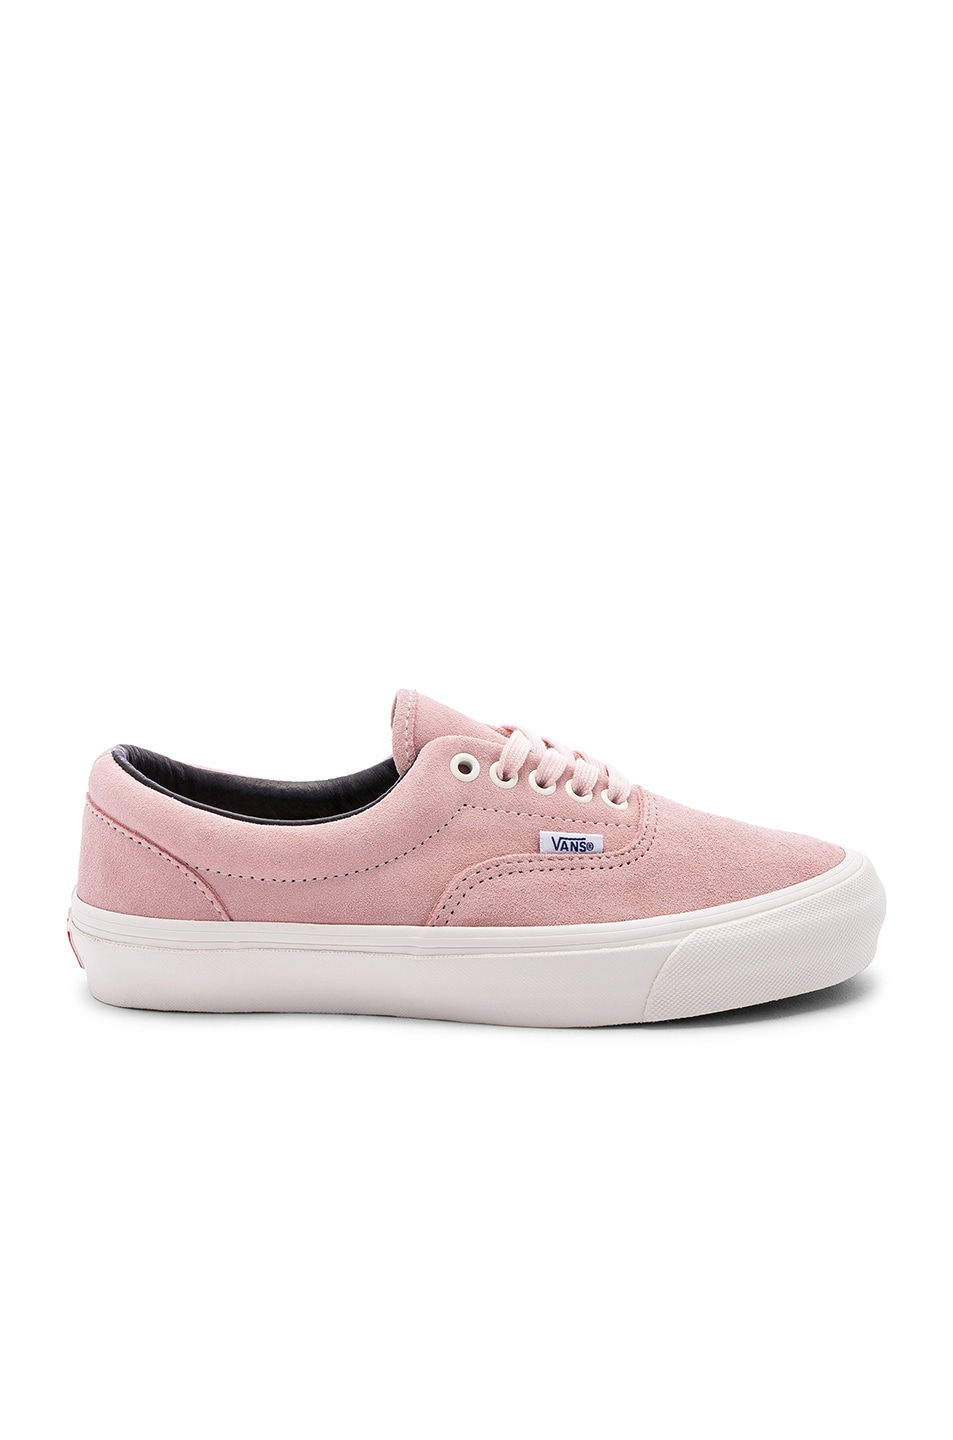 185f85a6cc Image 1 of Vans Vault OG Era LX in Pale Dogwood